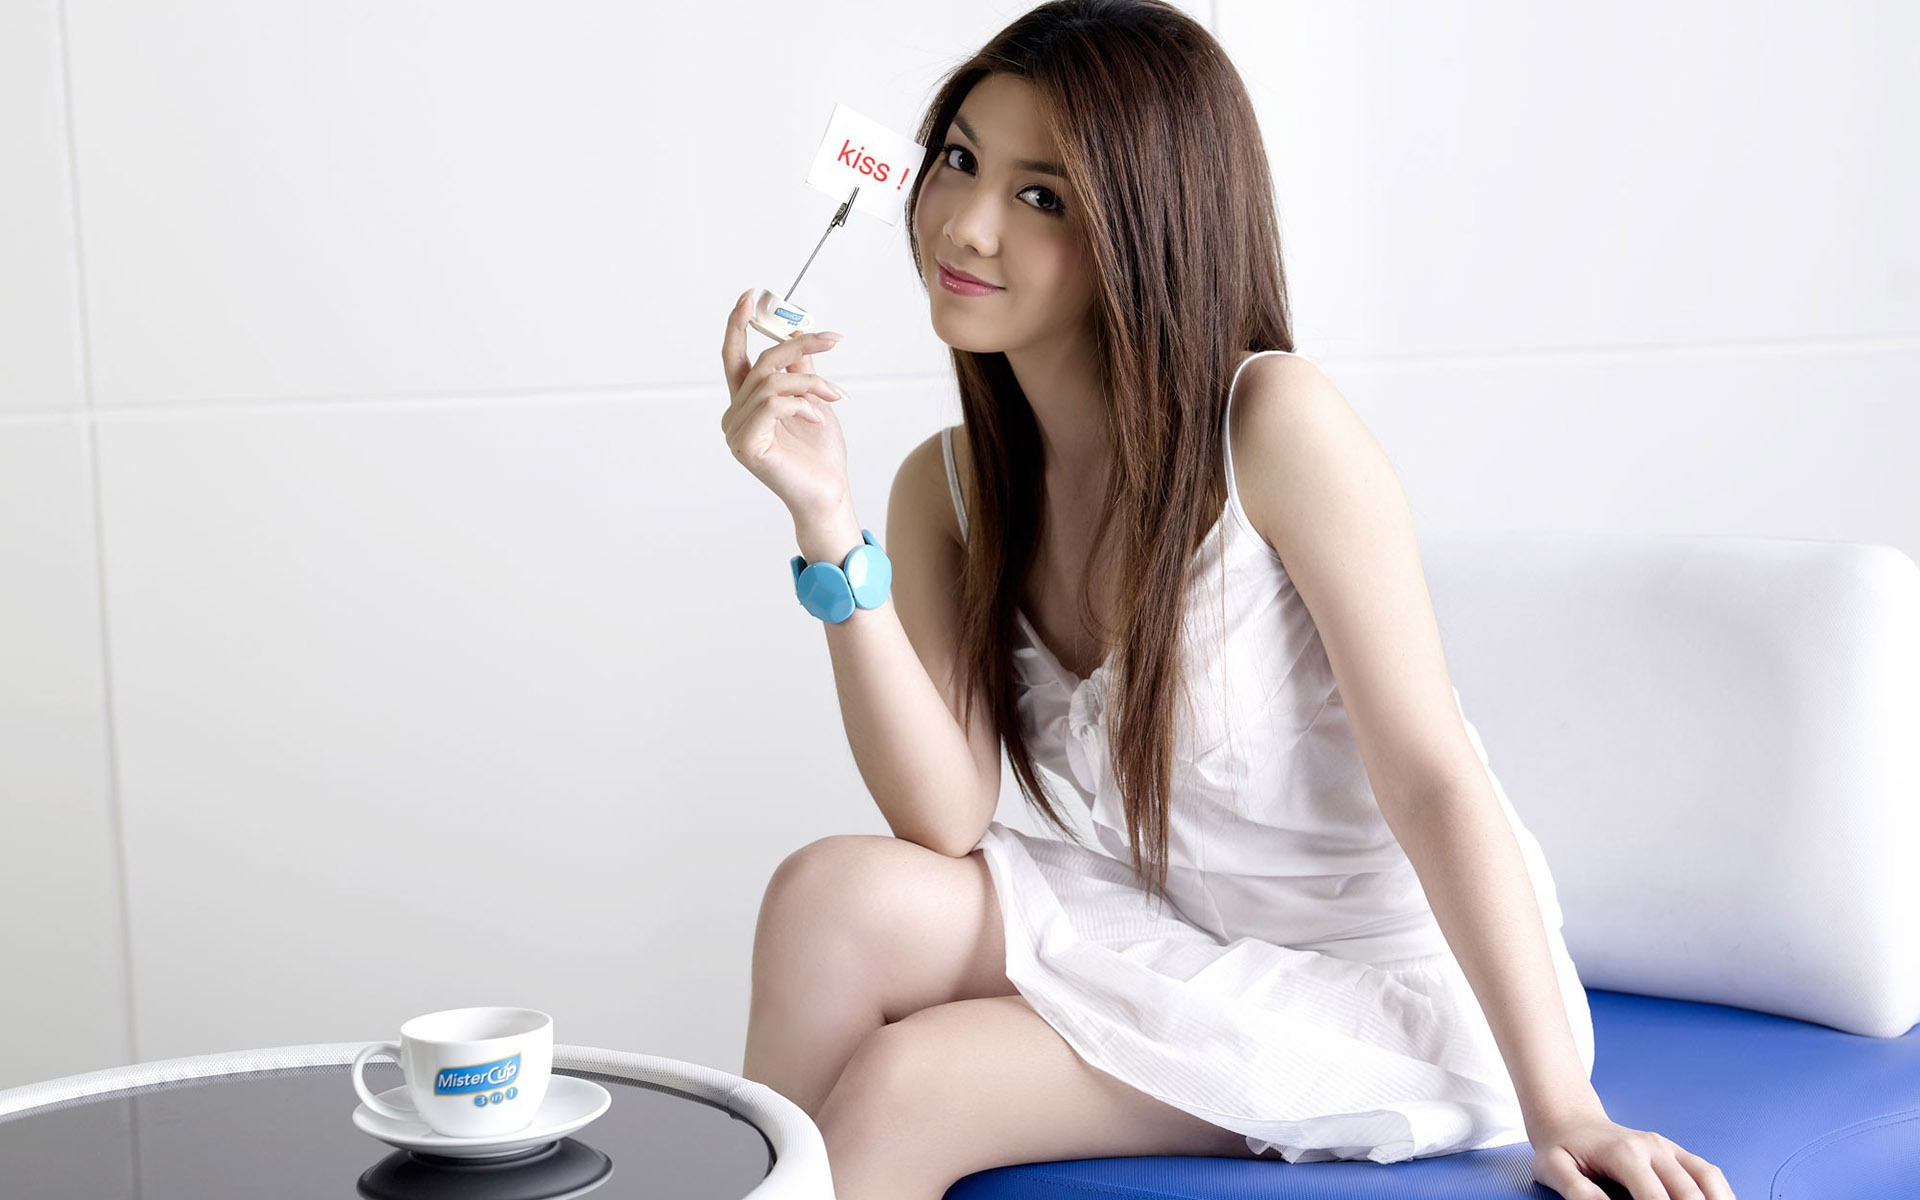 tatamy asian girl personals A dating site for american men & asian women  always free for women same features as the men, no limits because you are free all races of american men men, free for now when we decide to charge, it will be just a small fee, unlike other sites that charge $20, $30 or $40 a month click to take a look inside.